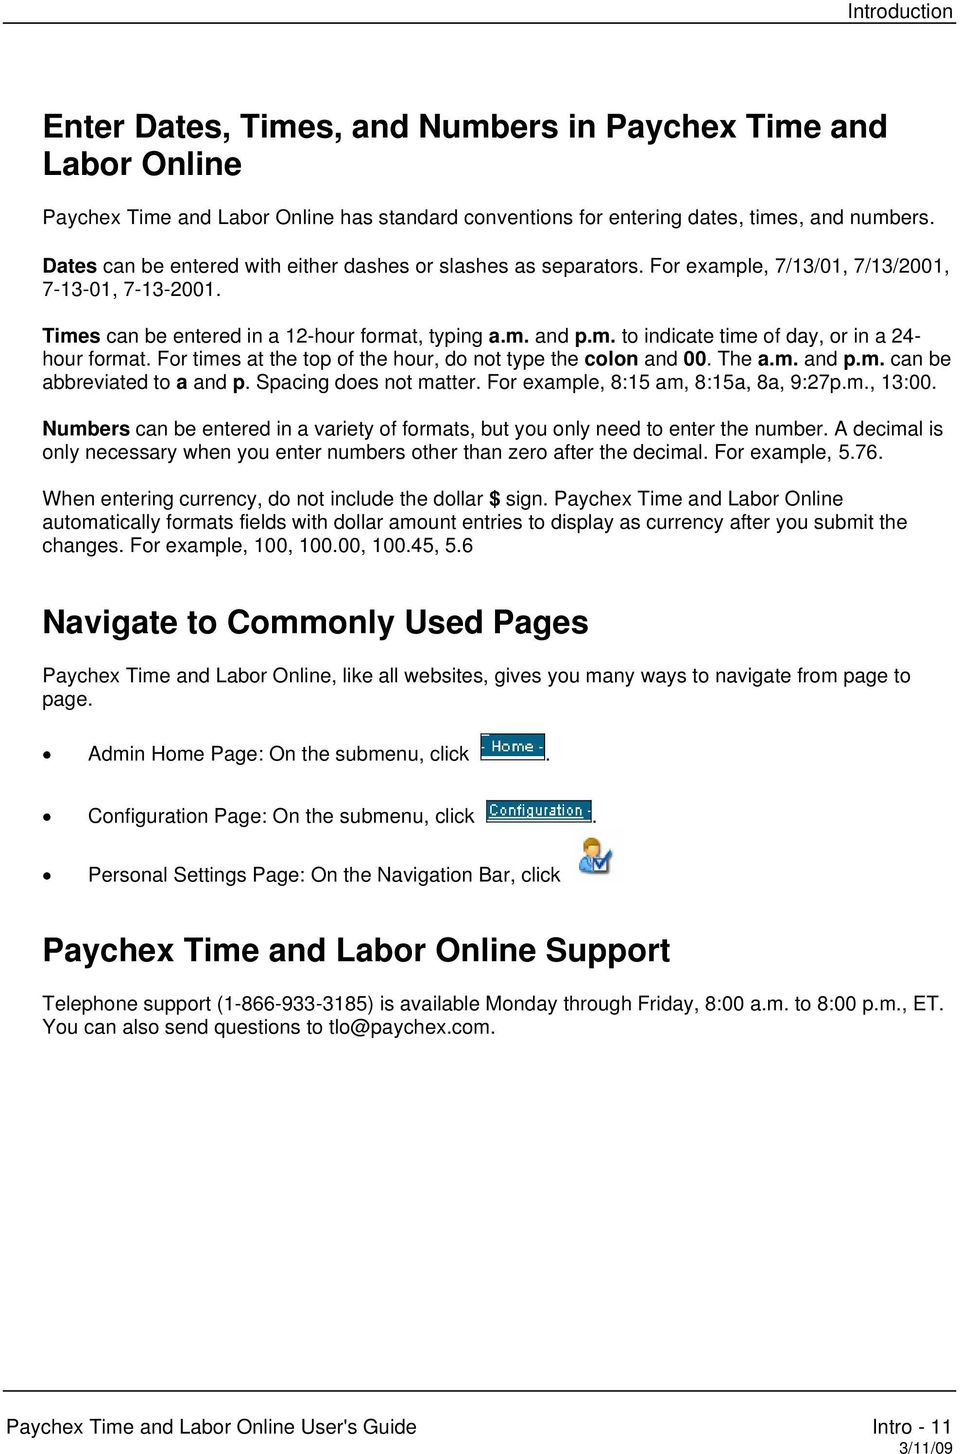 paychex time and labor